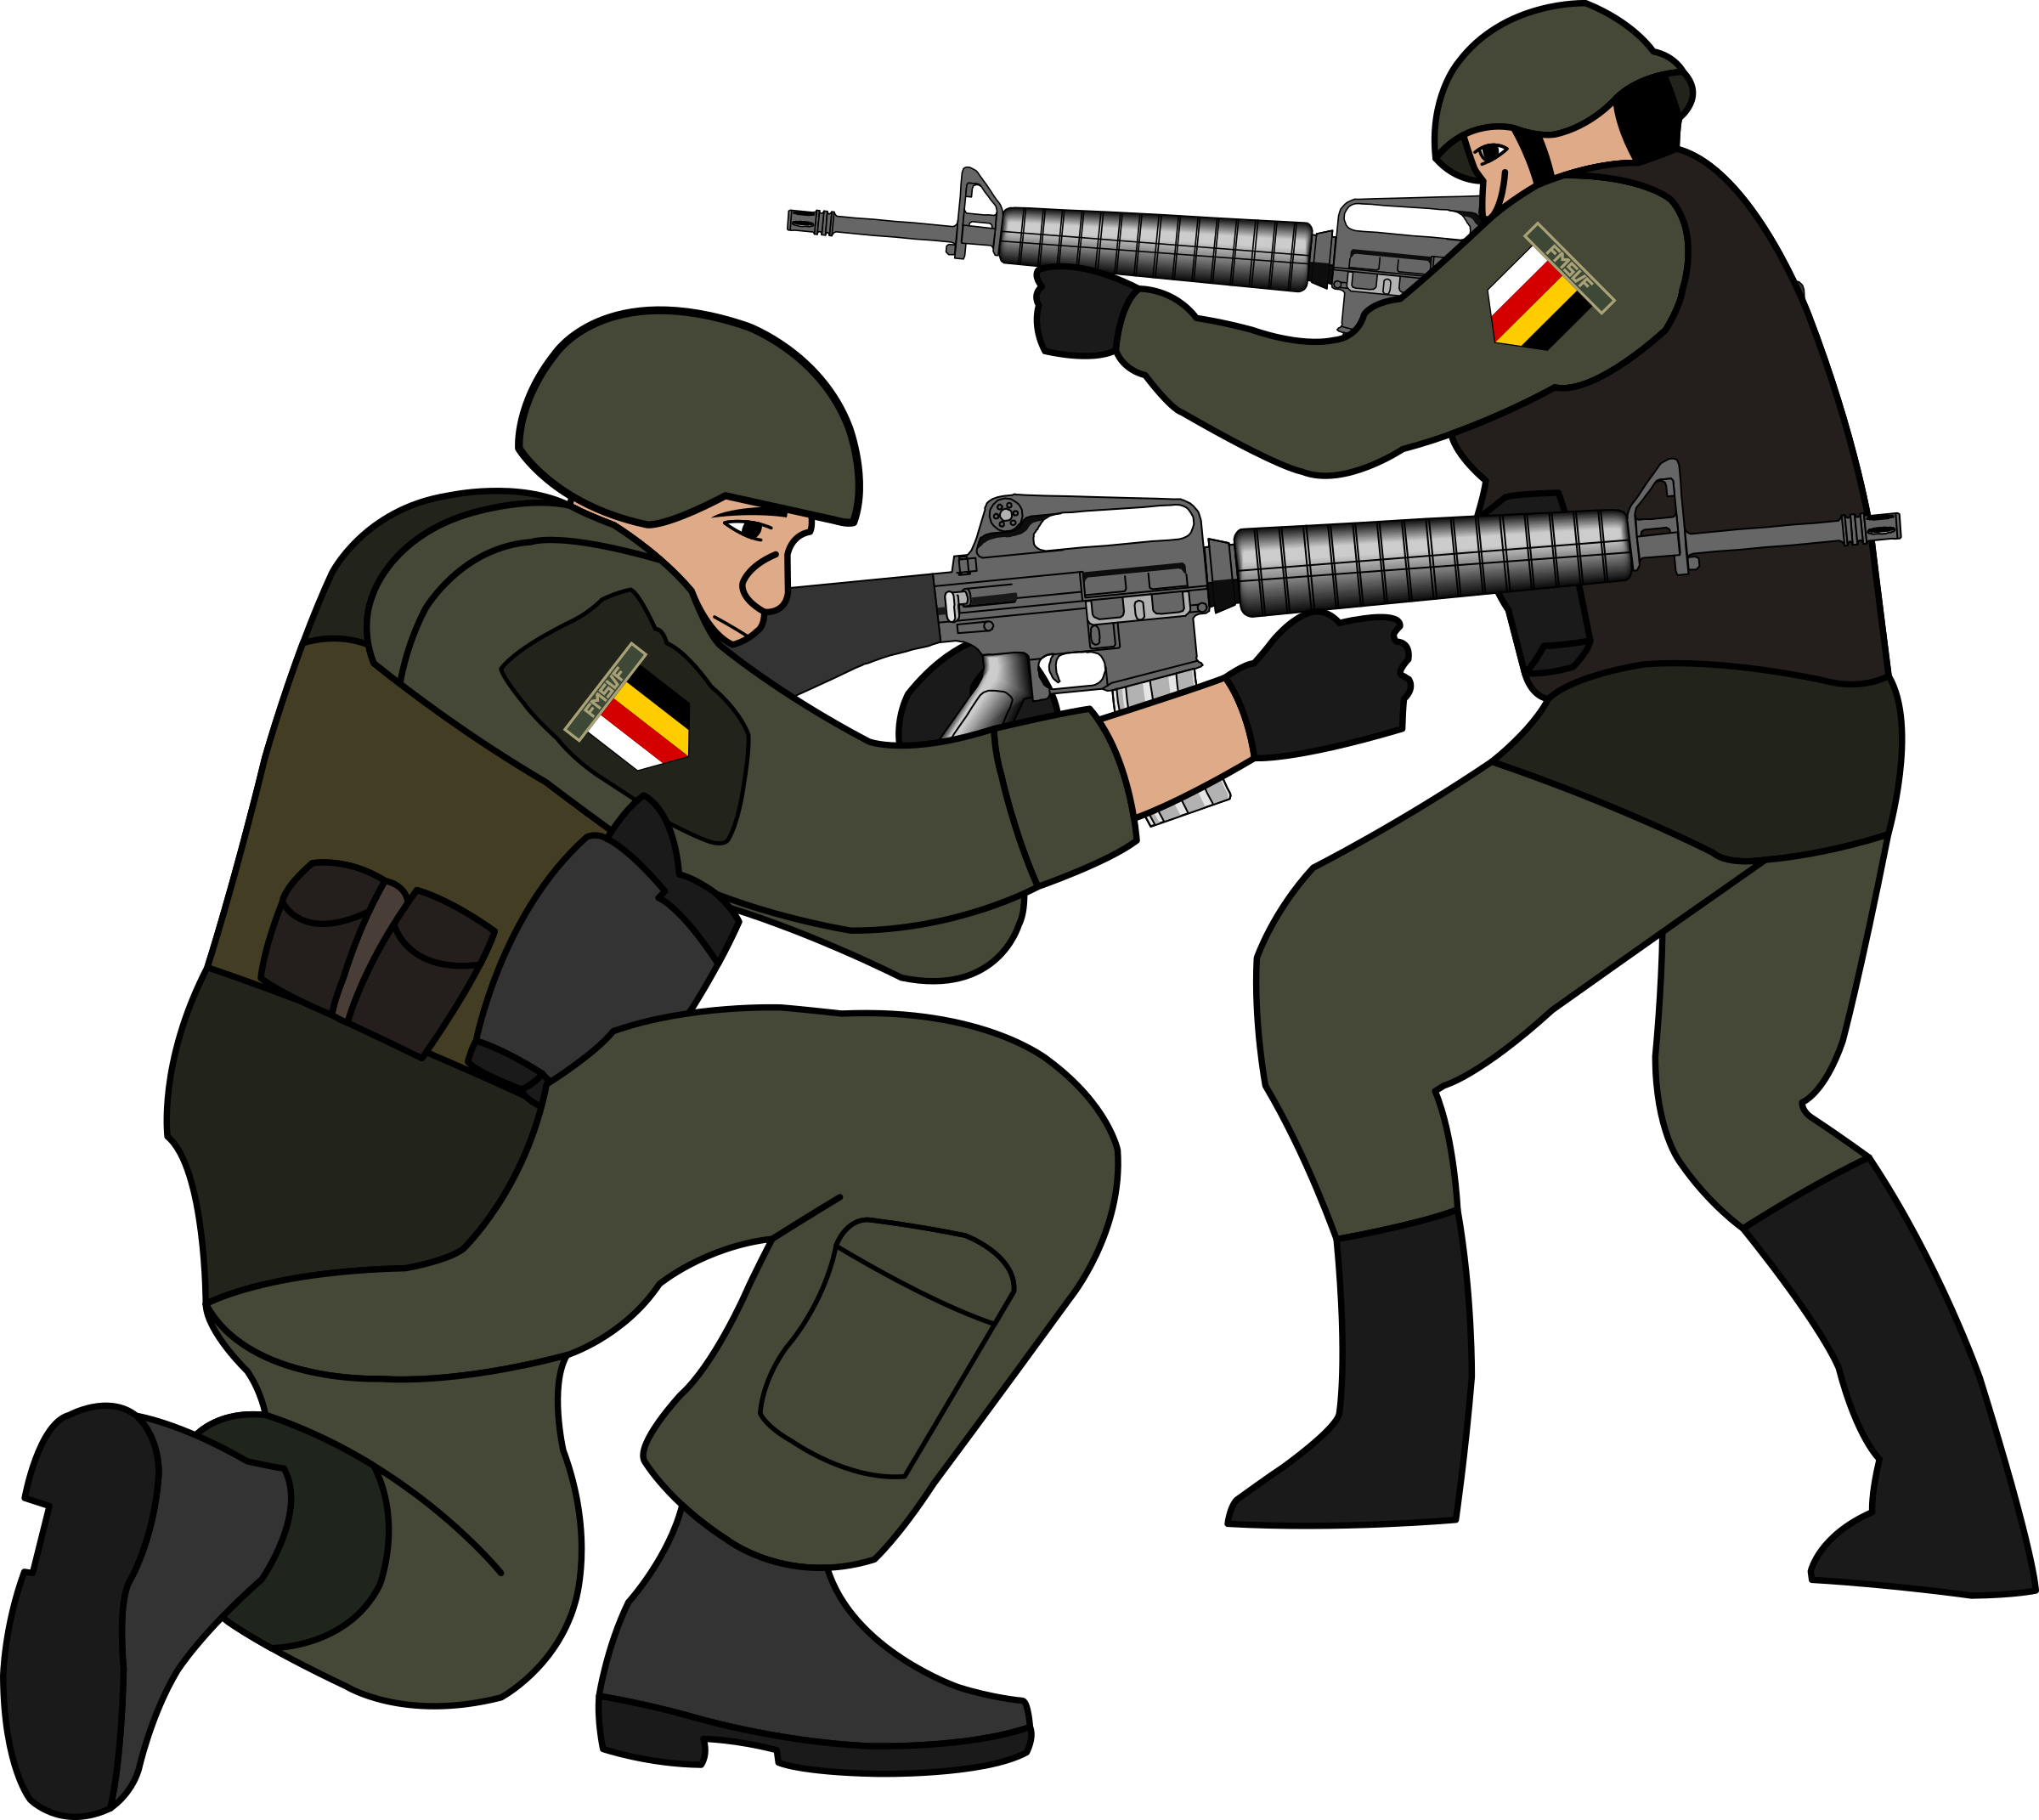 Battle clipart. Soldiers in big image